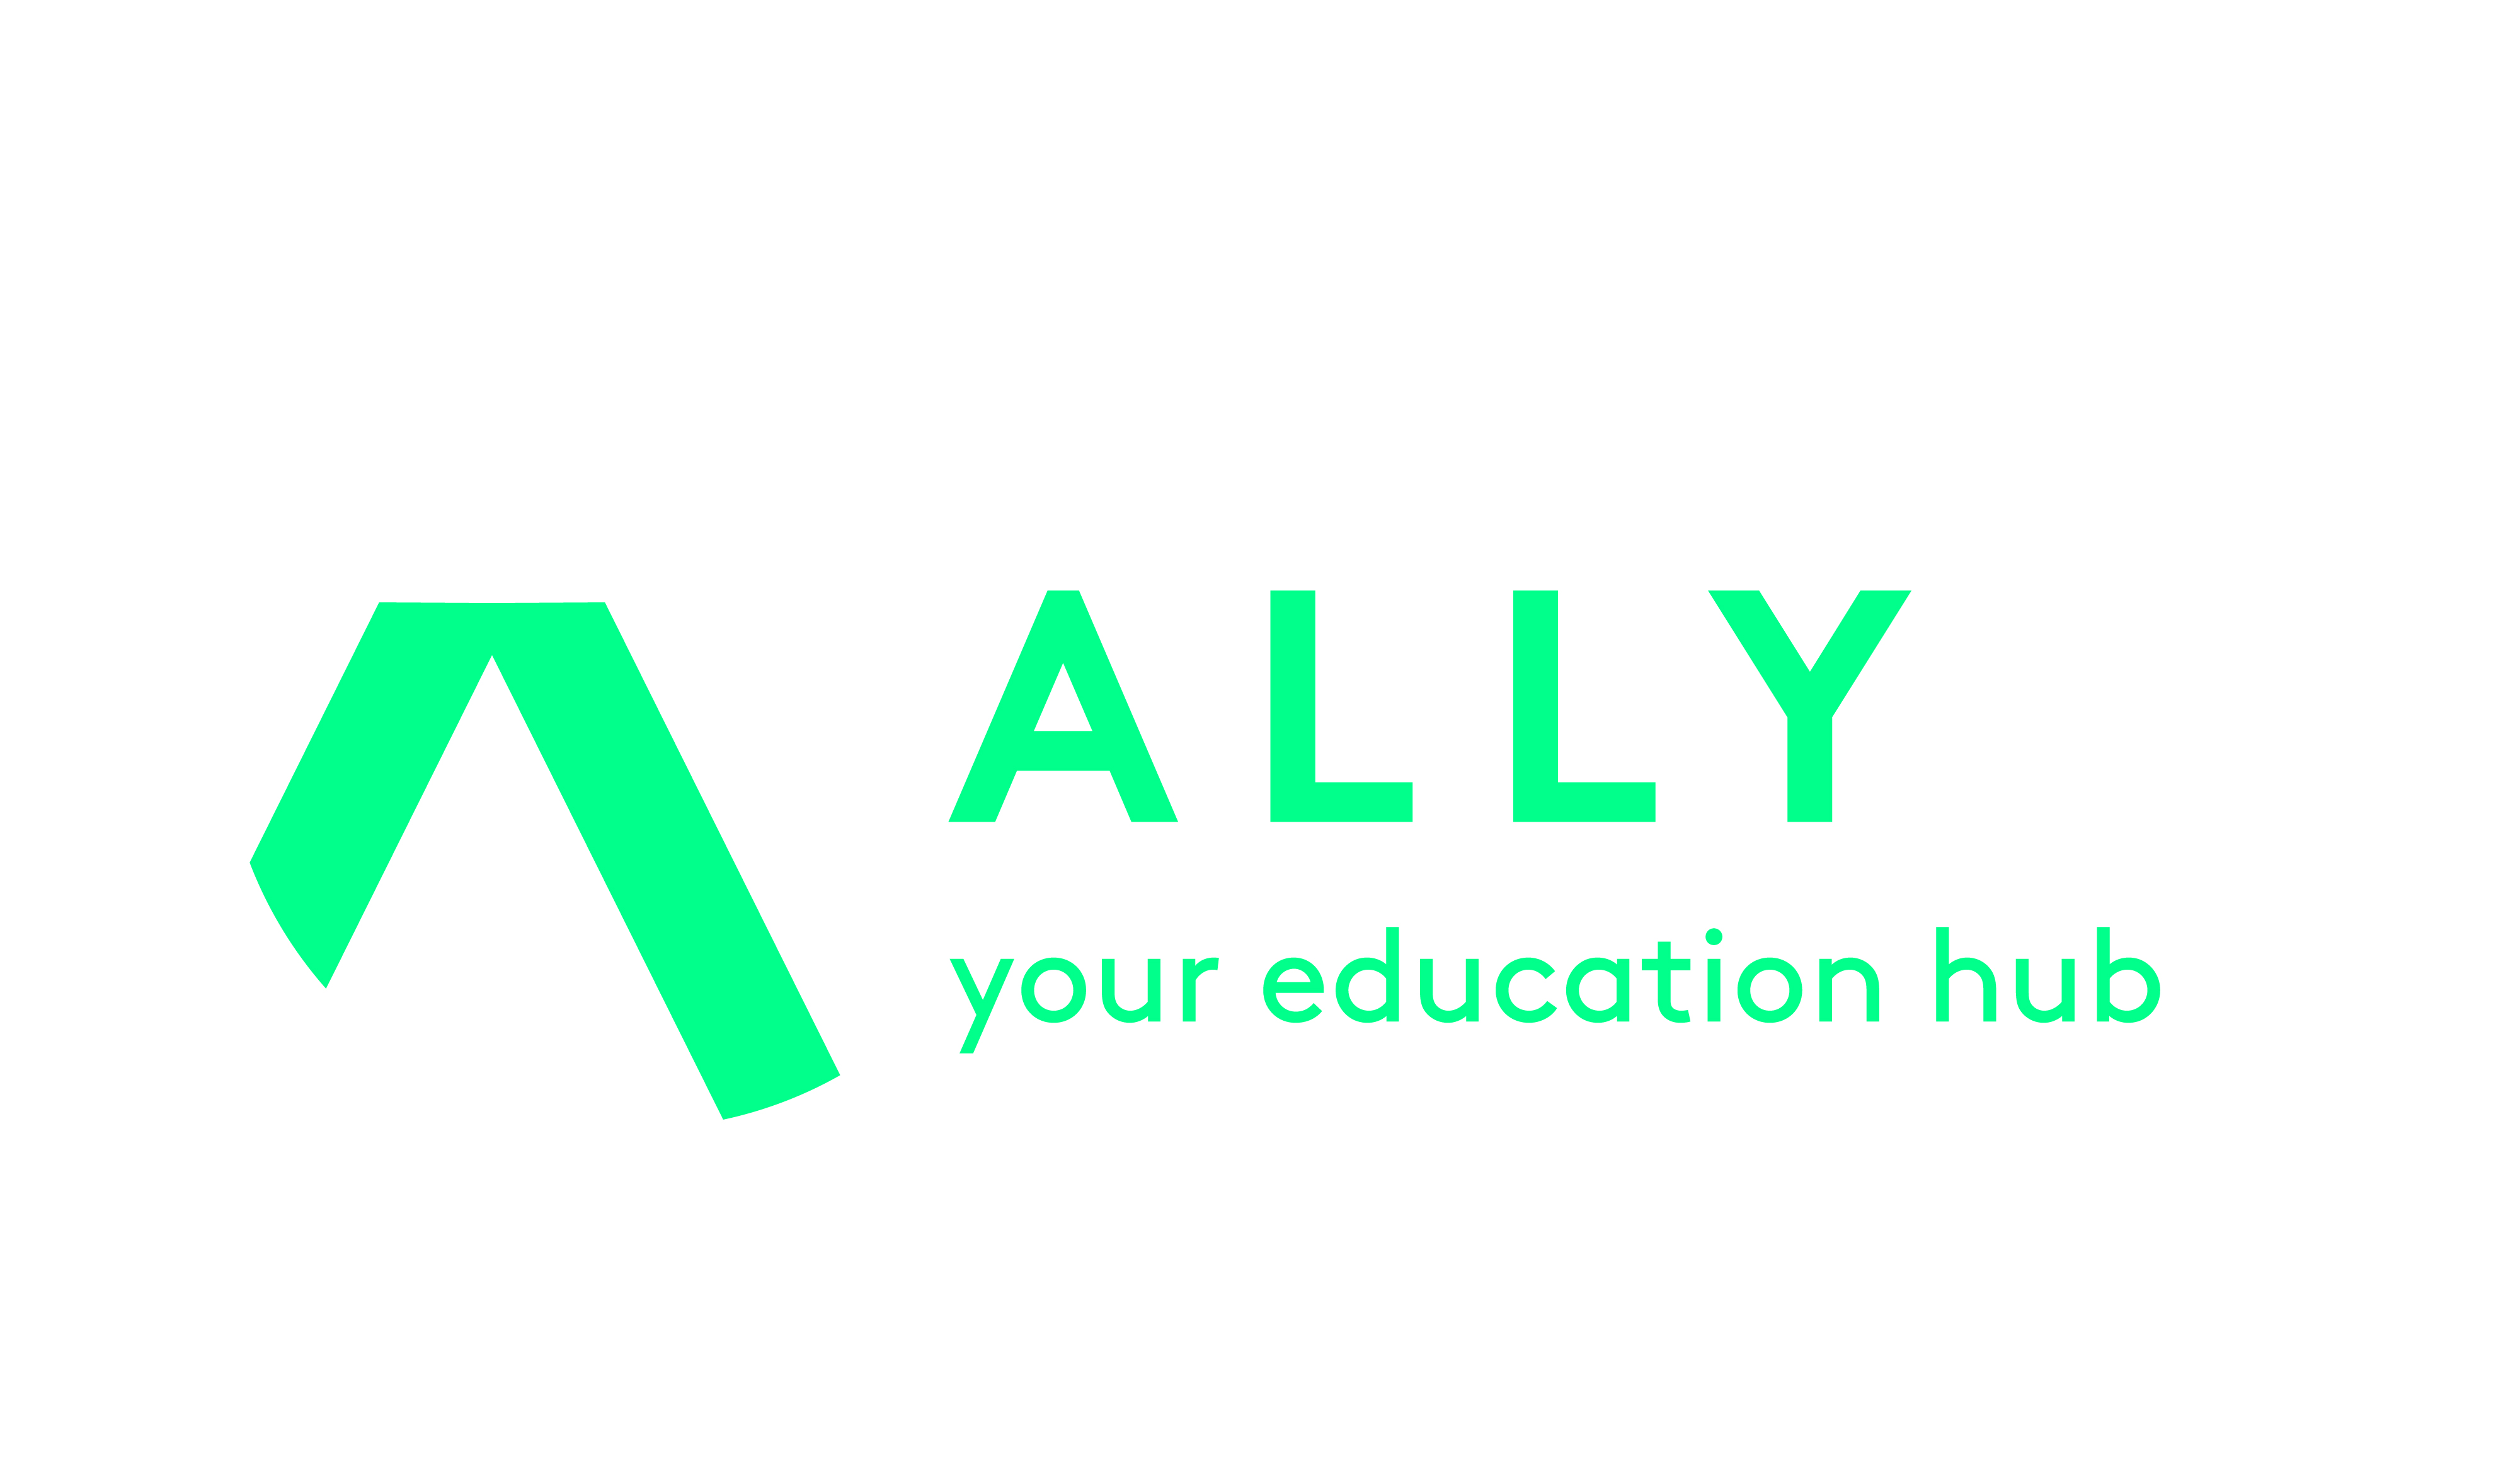 ally_green_horizontal